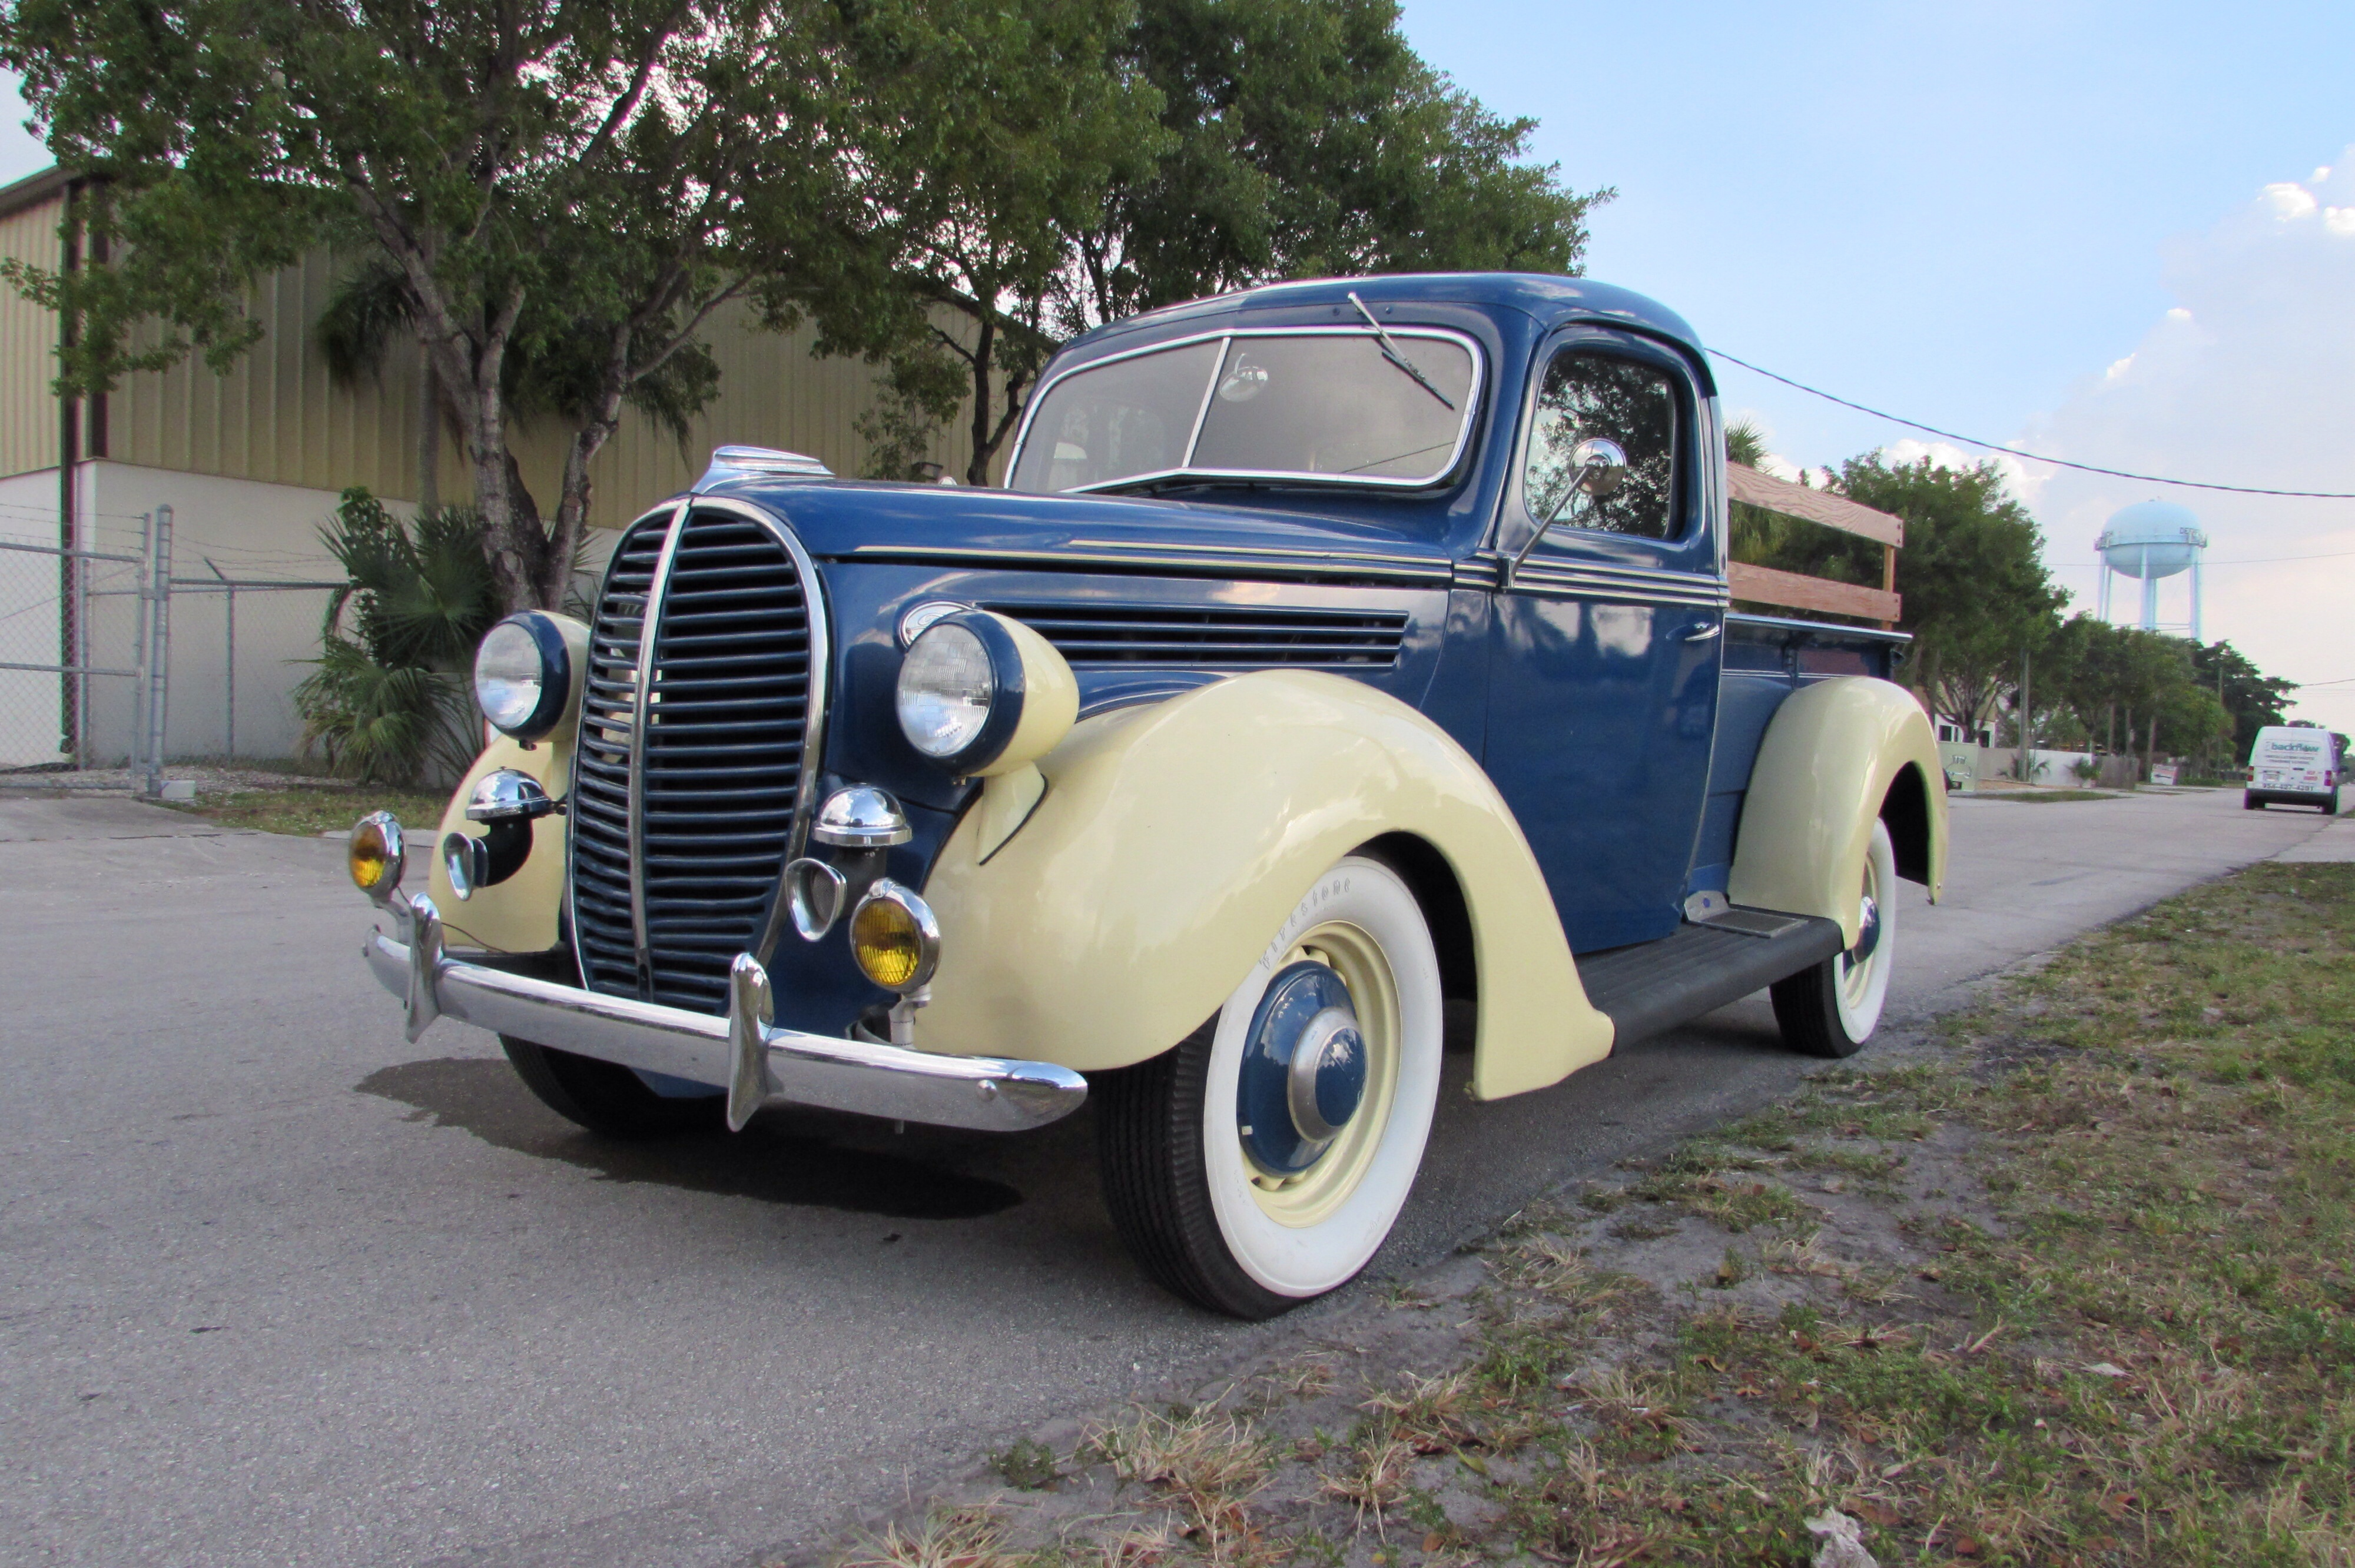 Ft. Lauderdale Beach - Collector Car Auction! - Presented By Dave Rupp!